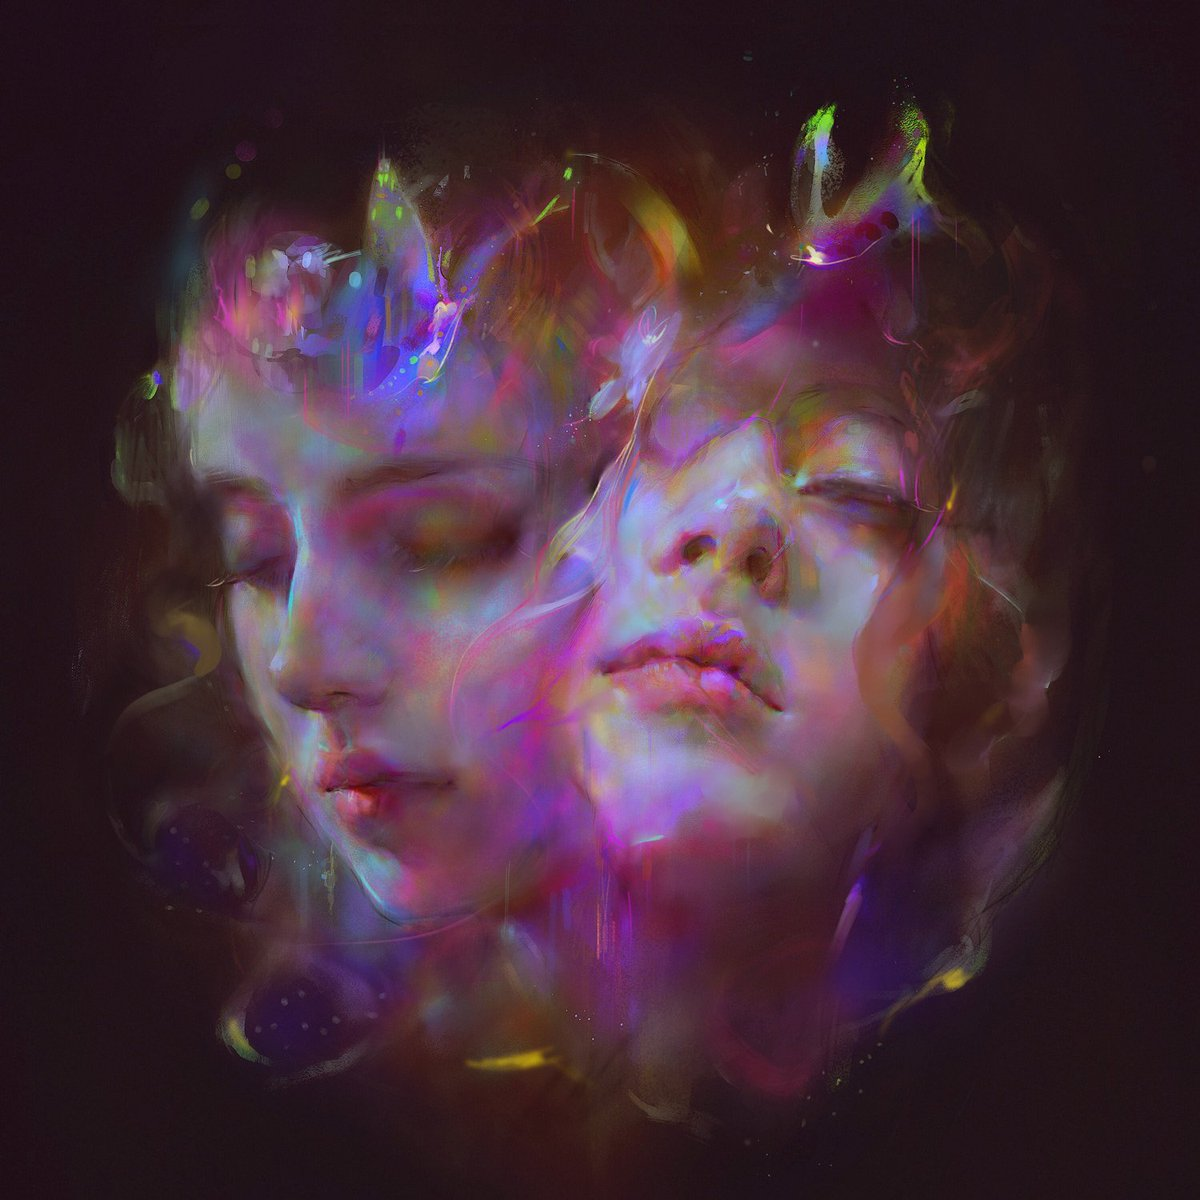 #NewMusic from @thelegofgrandma NOW on @RadioVerulam - we're playing It's Not Just Me, taken from their new album #imallears